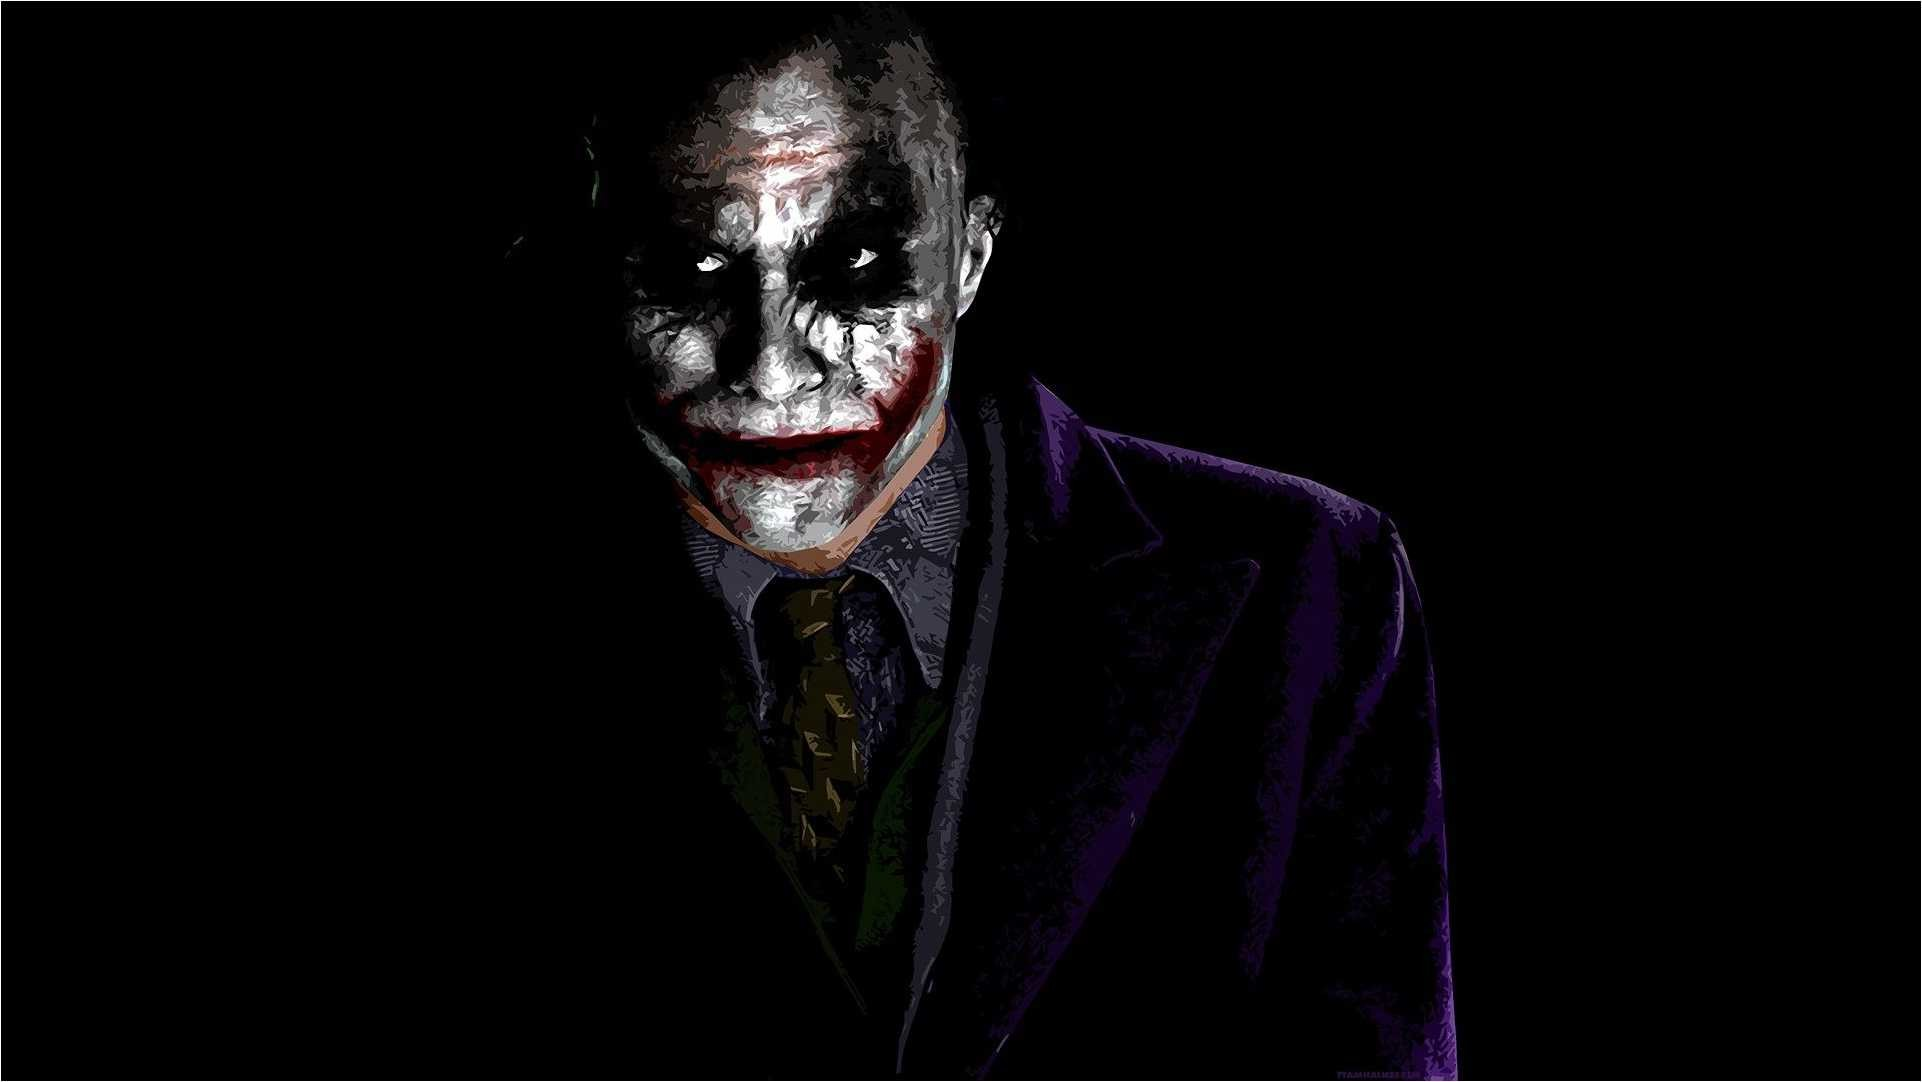 The Joker Tumblr 4k Wallpapers Posted By Zoey Mercado